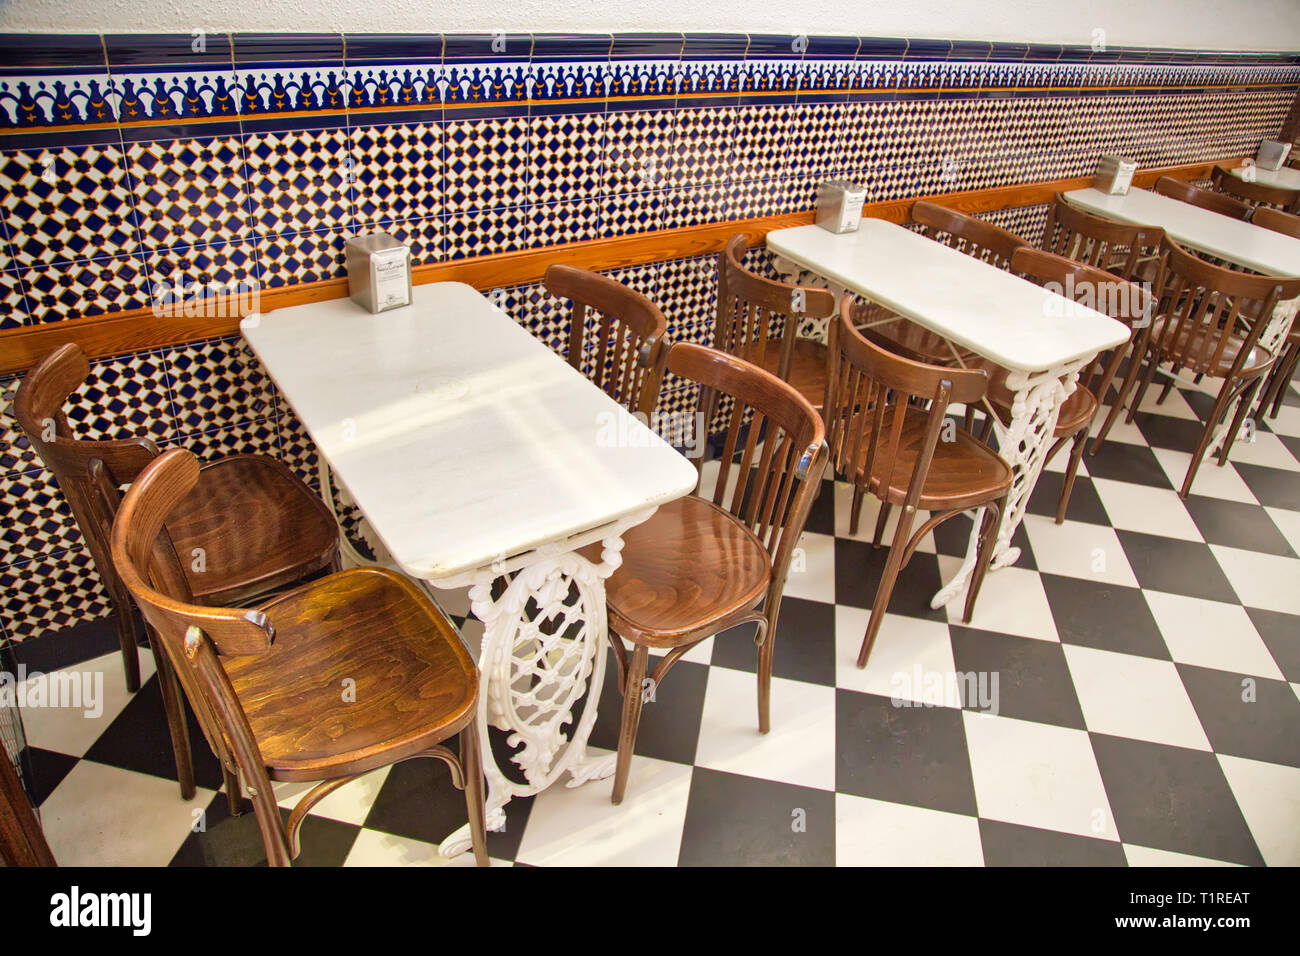 Typical Spanish cafe in Valencia Stock Photo